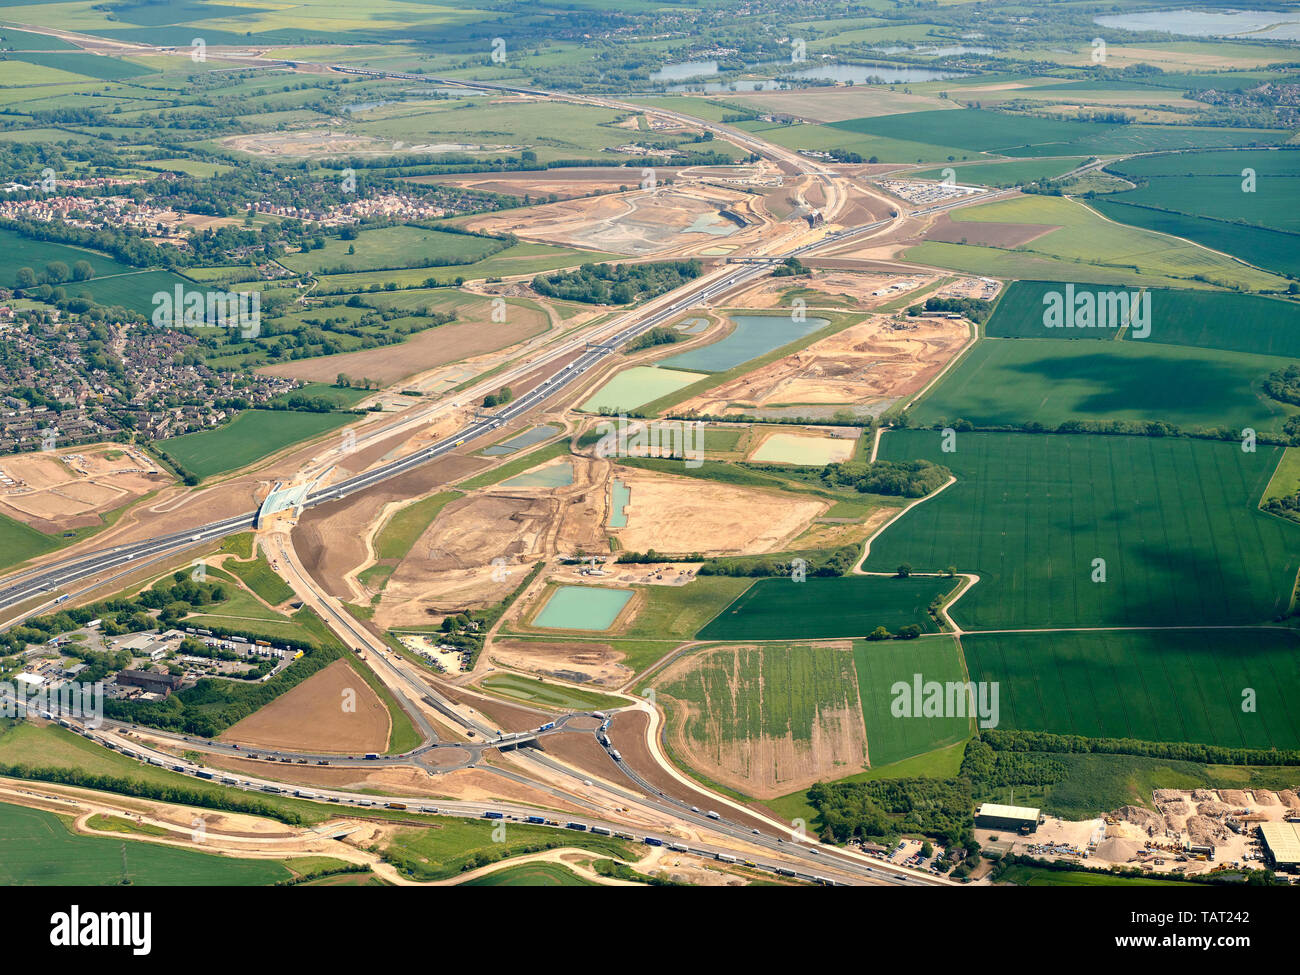 an aerial view of the new A14/A1 link Road construction, south west of Huntingdon, South East England, UK - Stock Image